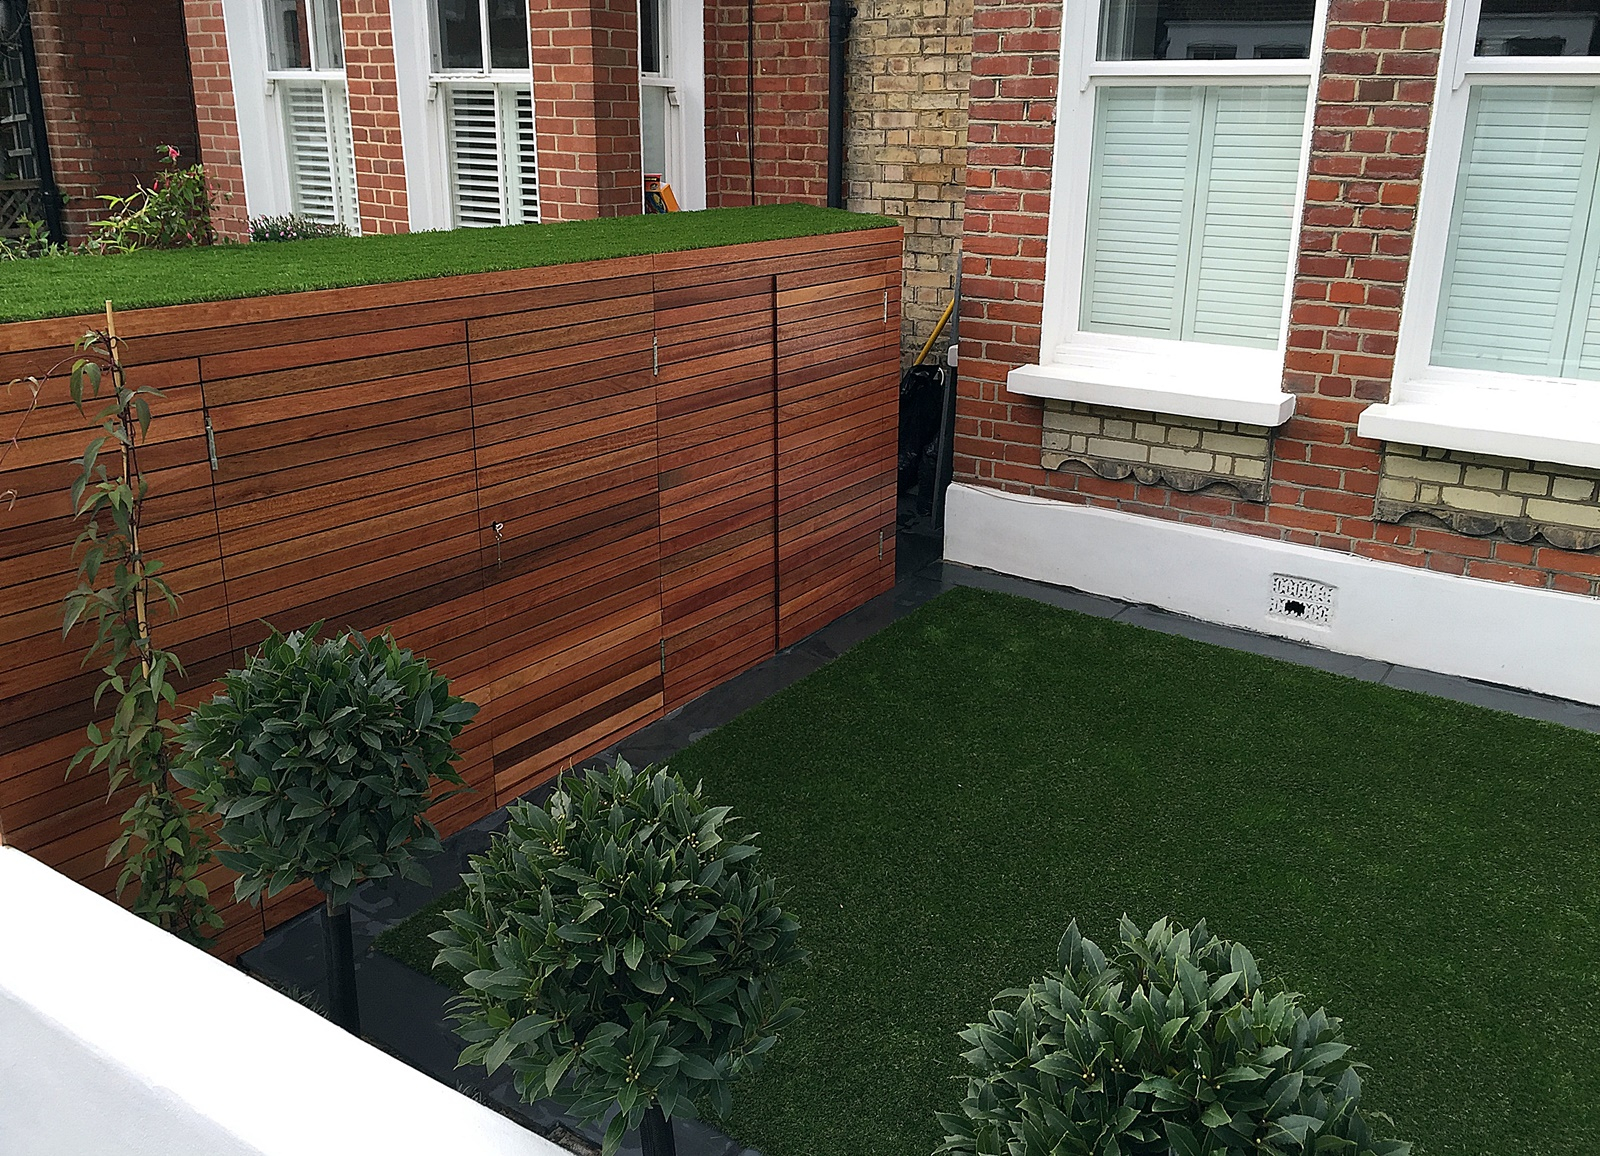 Fake grass Chelsea Putney architectural white garden wall planting lawn easi Wandsworth